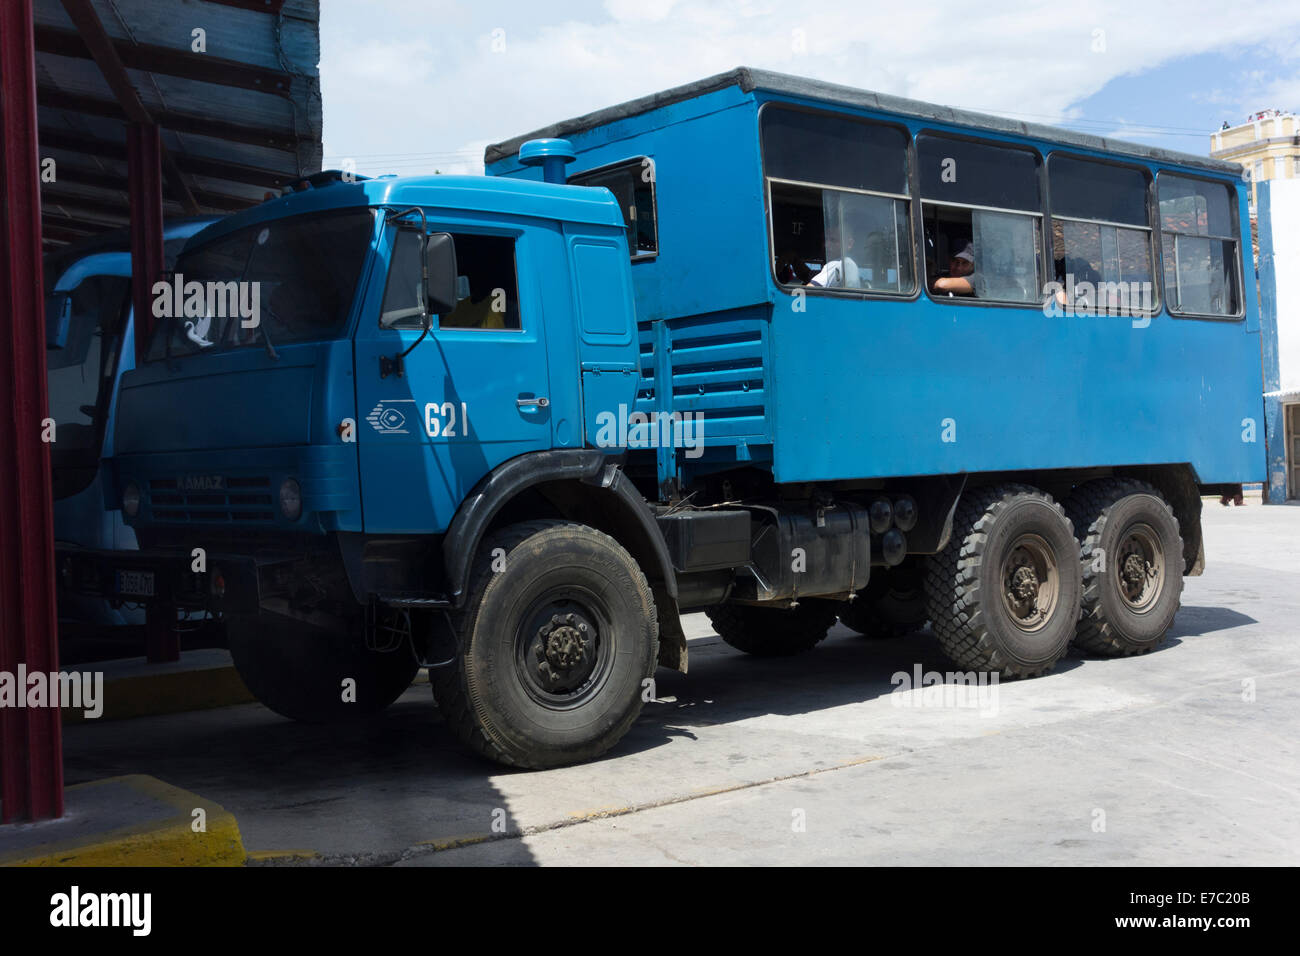 army lorry converted for public transportation, bus station, Cuba - Stock Image